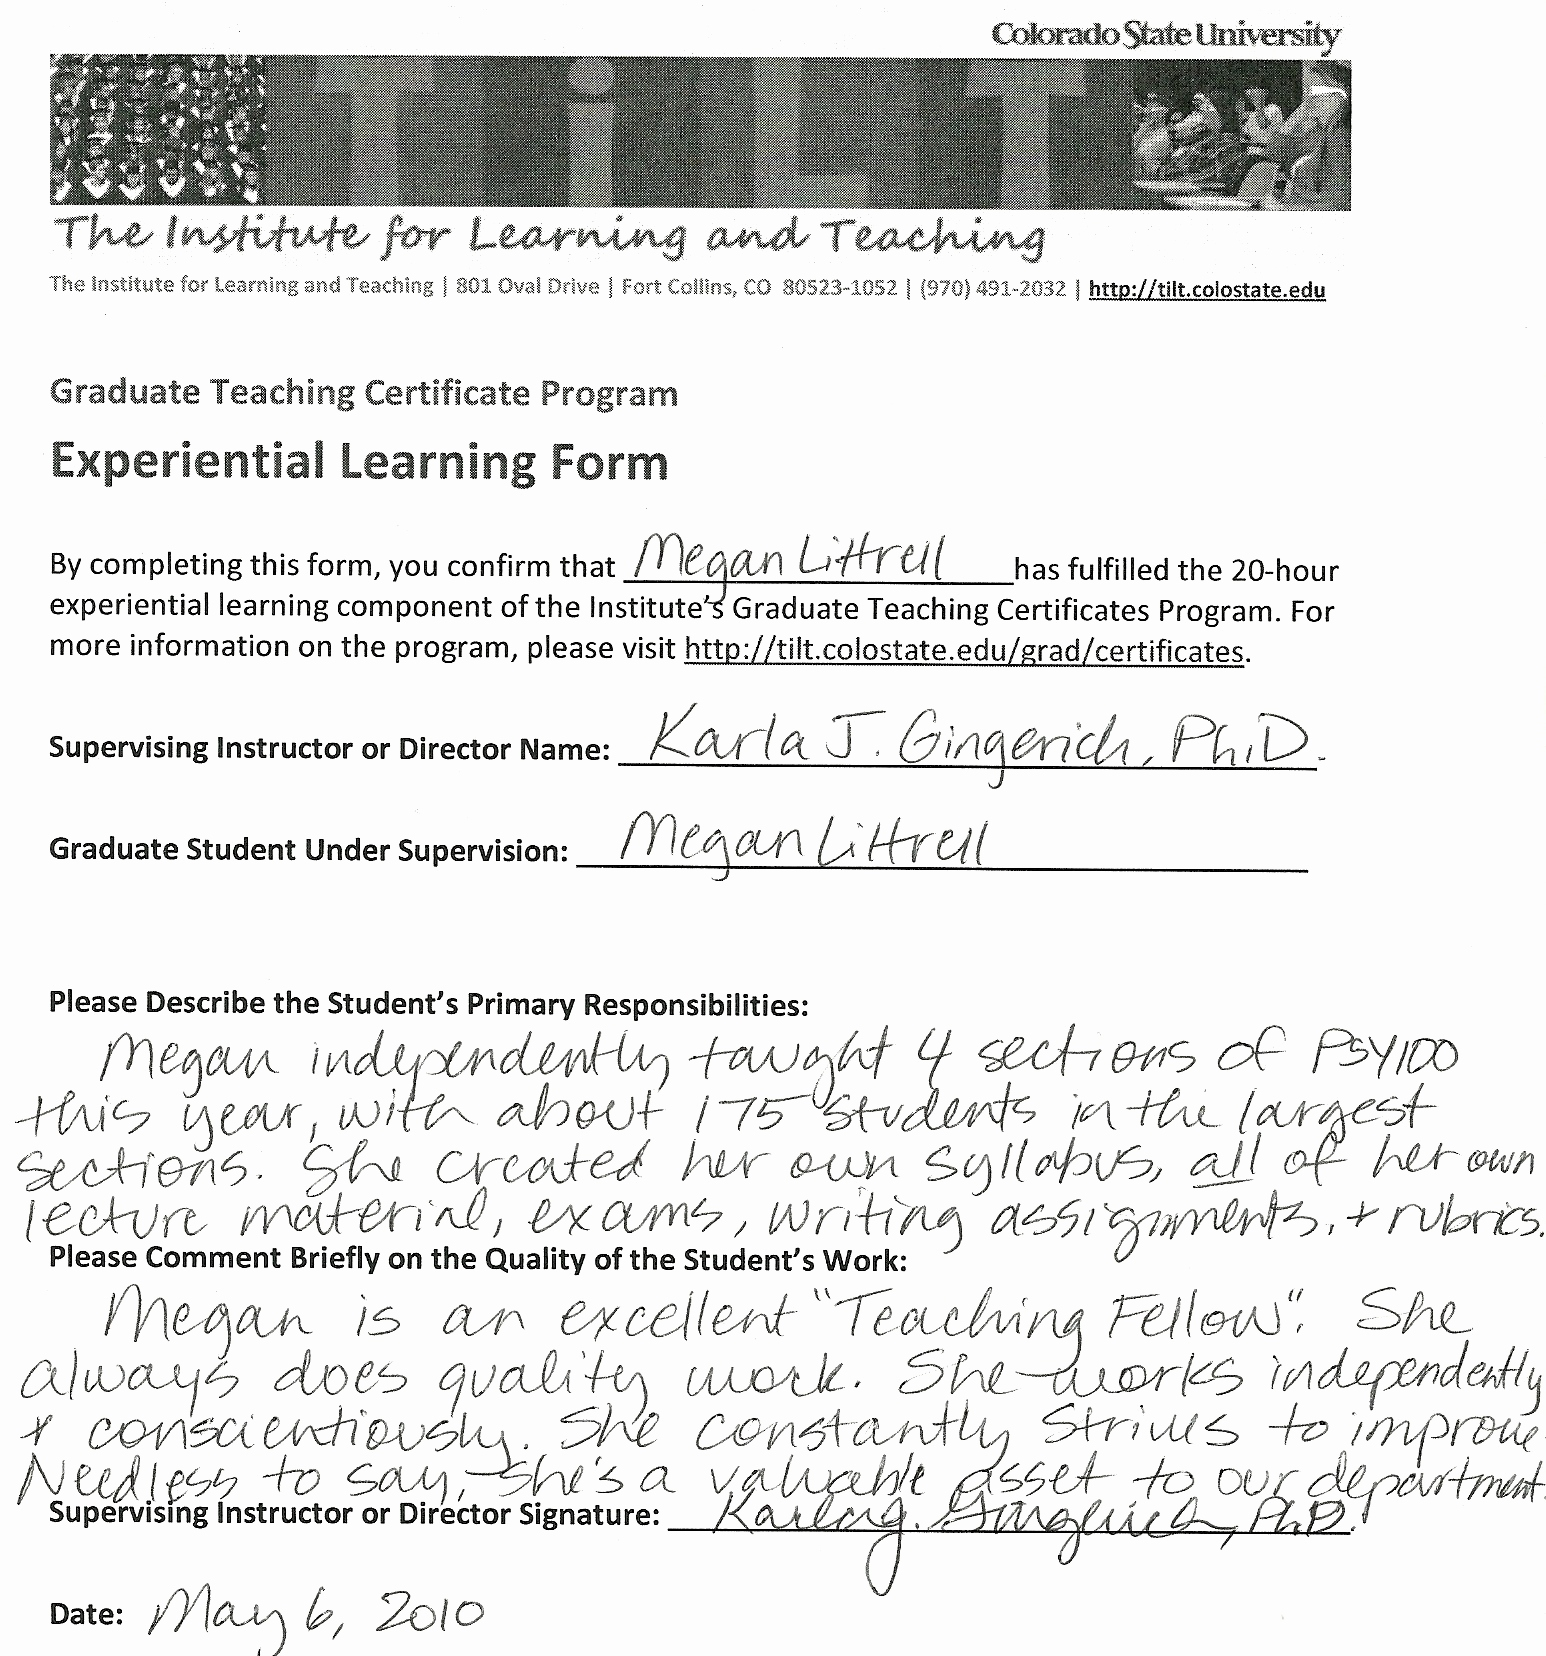 026 Essay Example Teacher Reflection On Lessons Examples New Teaching Th Grades Sample Of Incredible Prompt College Writing For 4th Grade Prompts Expository High School Full